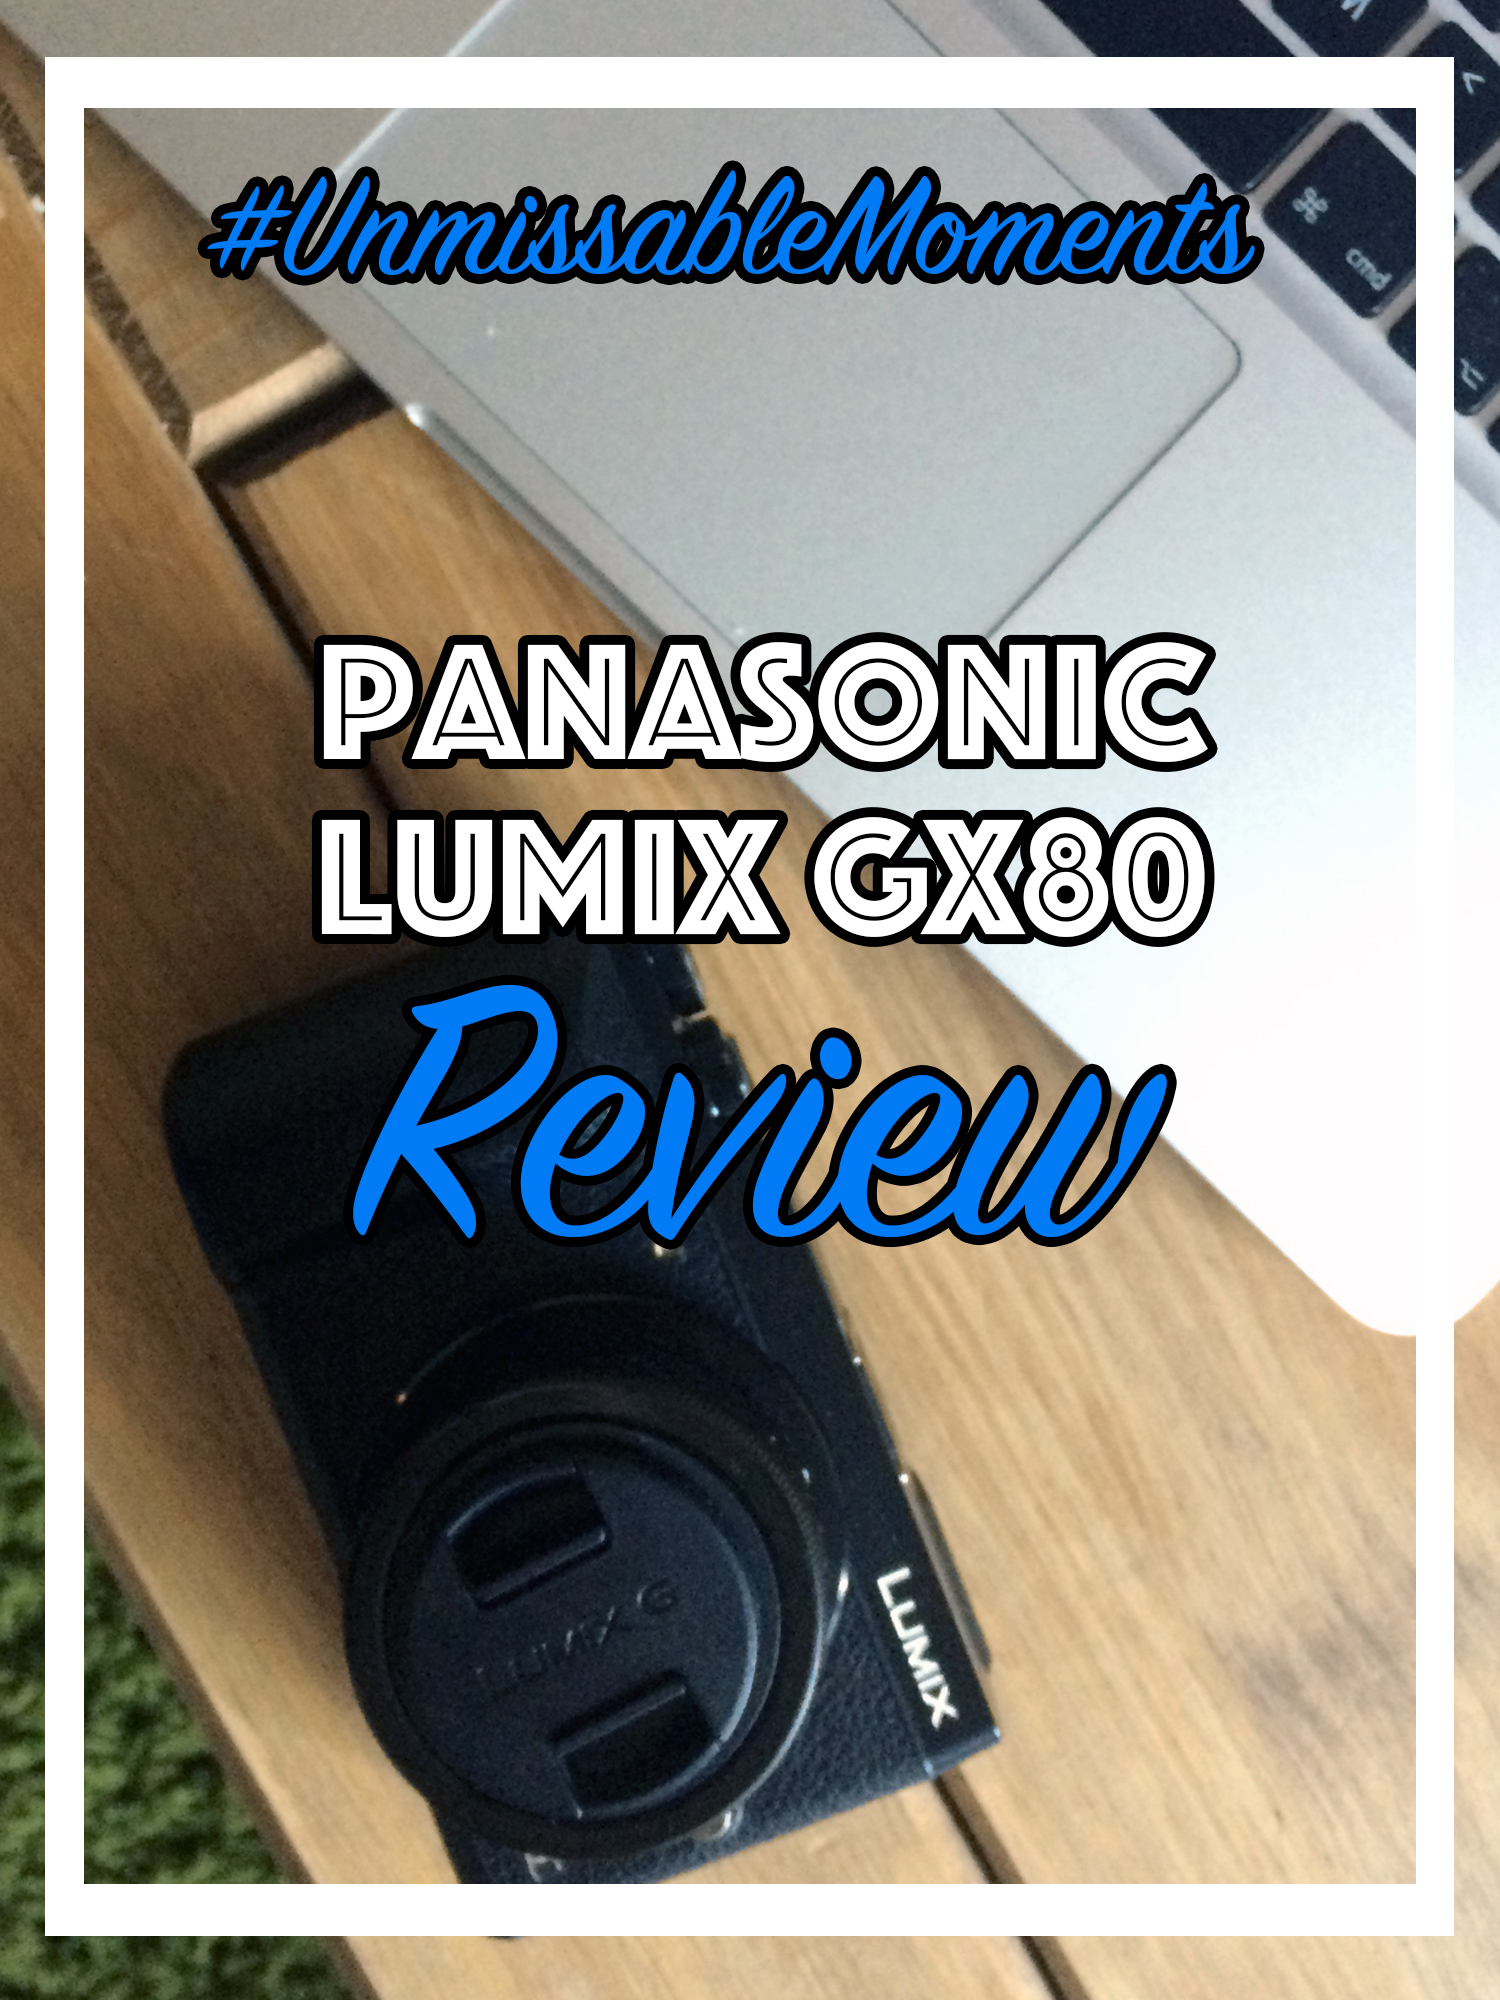 unmissable moments panasonic